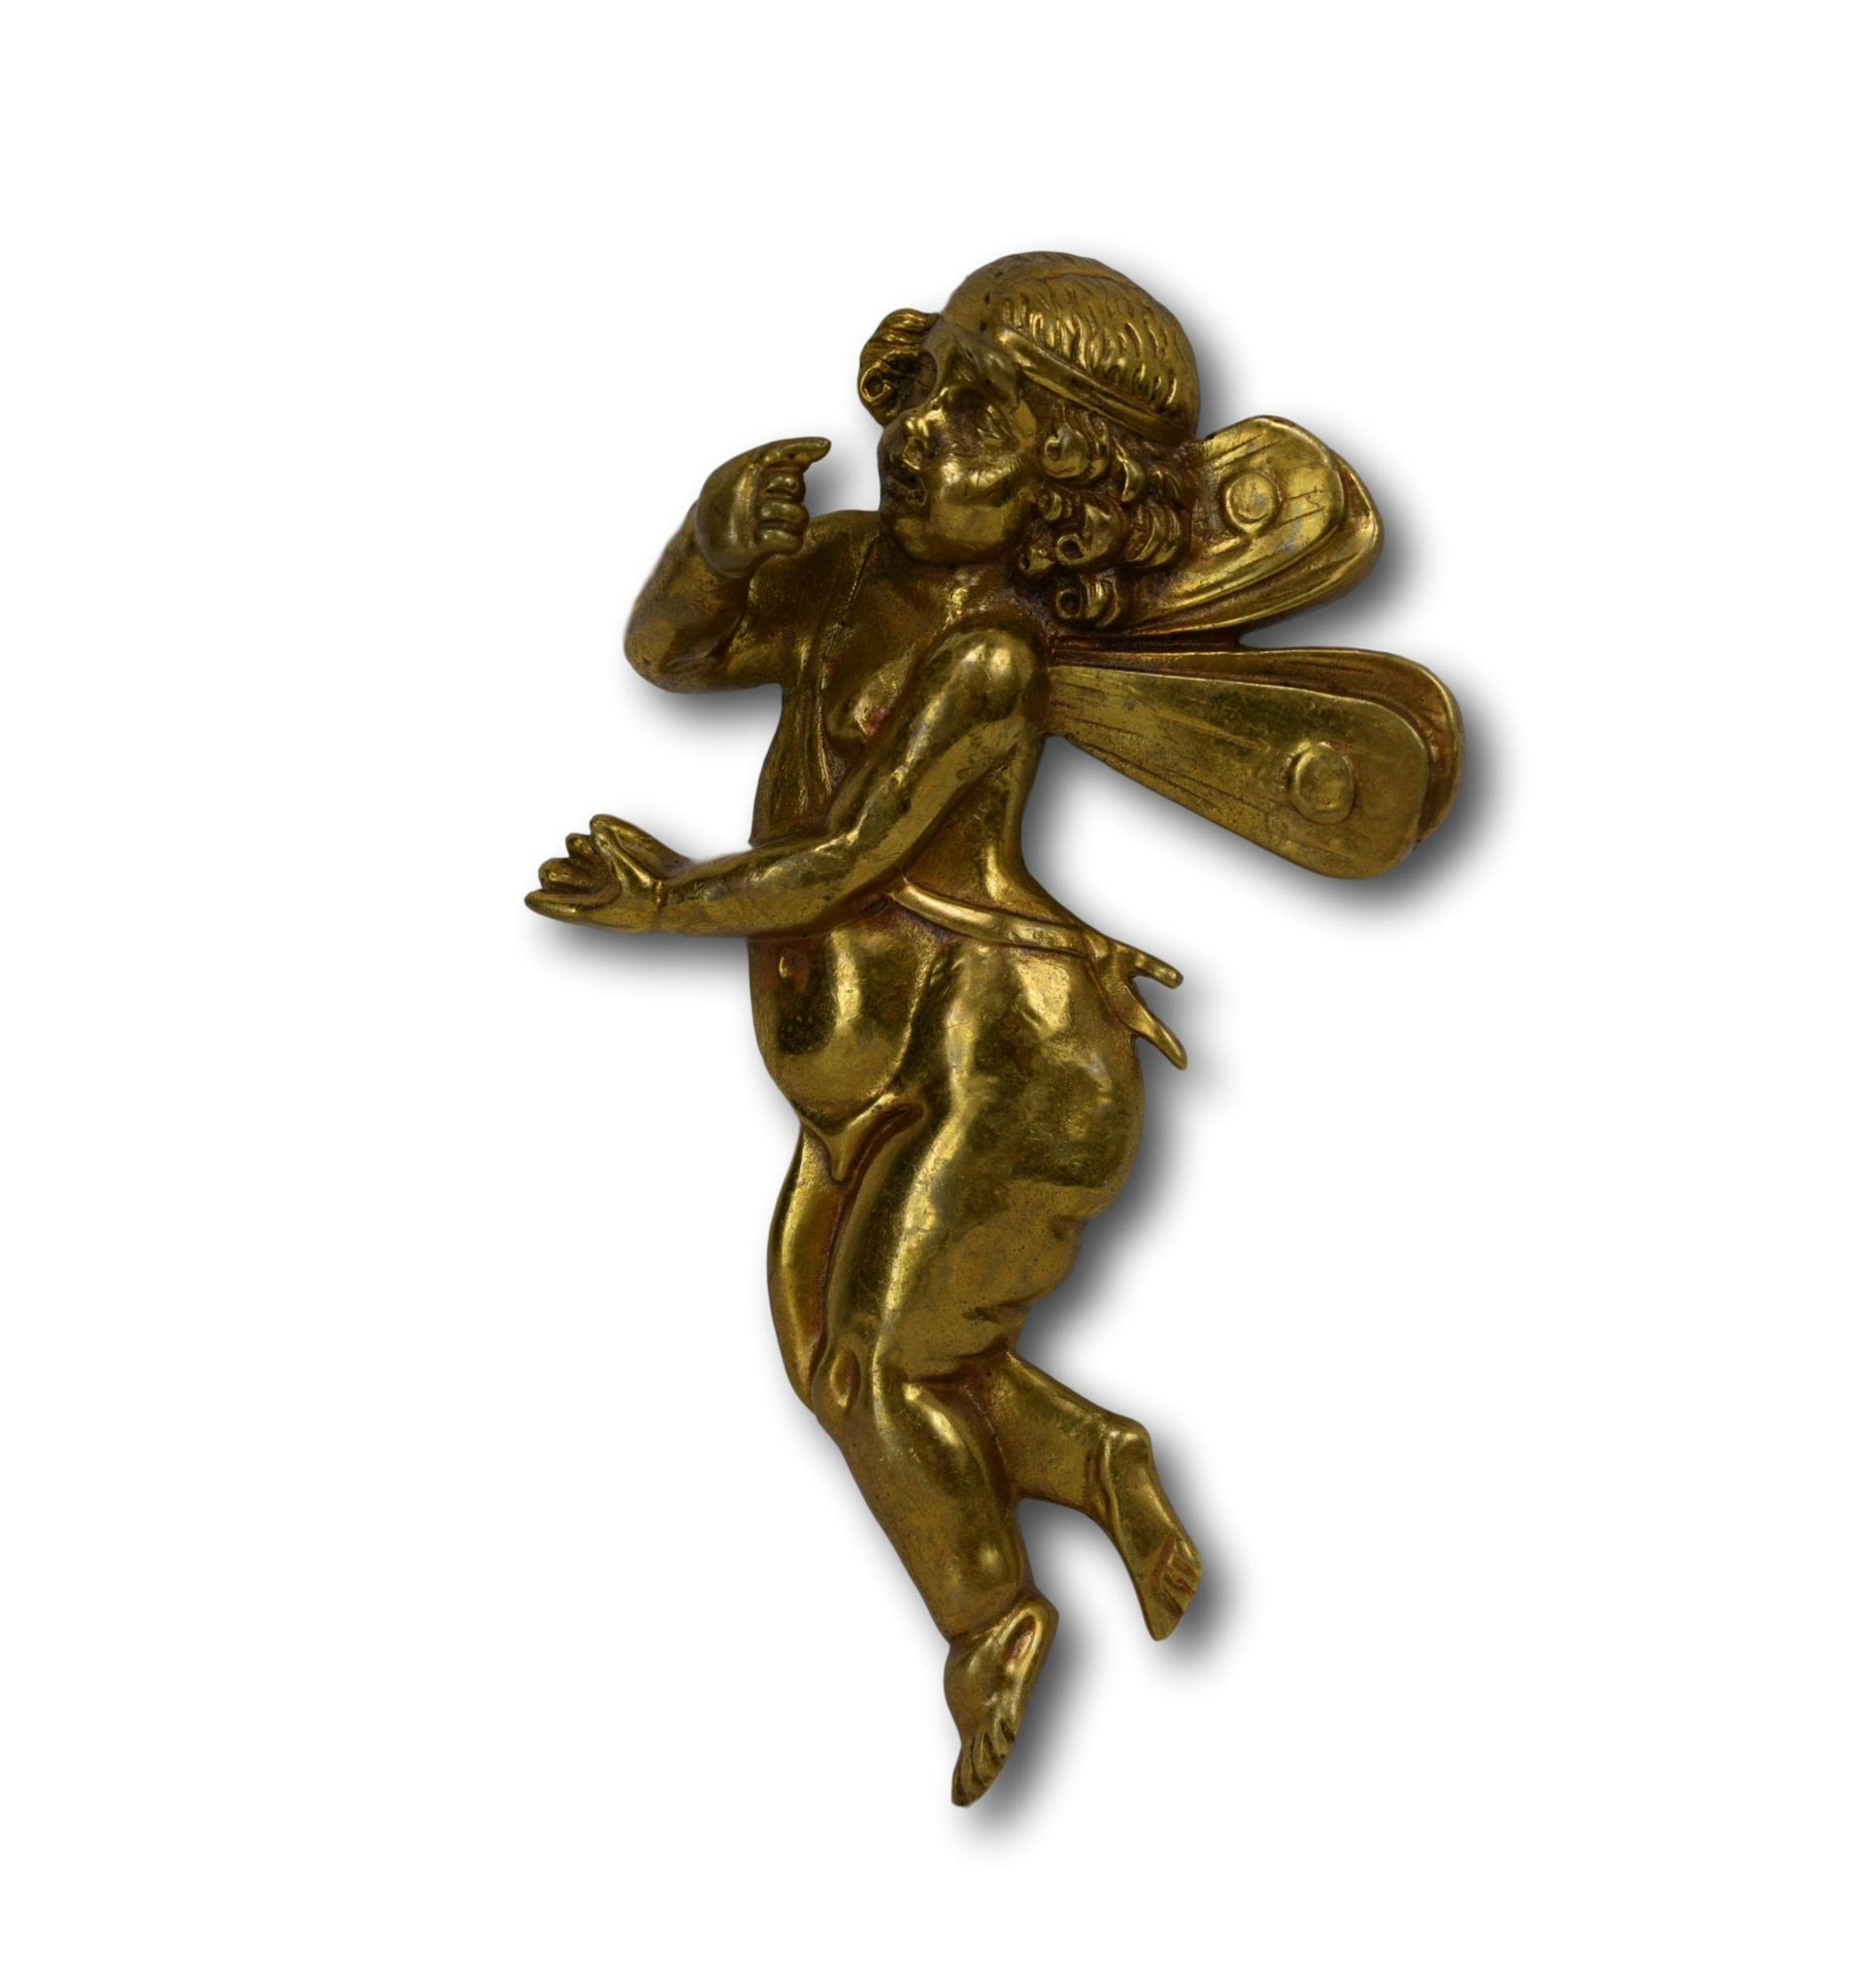 French Vintage Angel Pediment Plaque Mount, Bronze Furniture Hardware Salvage, Winged Angels, Shabby Chic Furniture Ornament